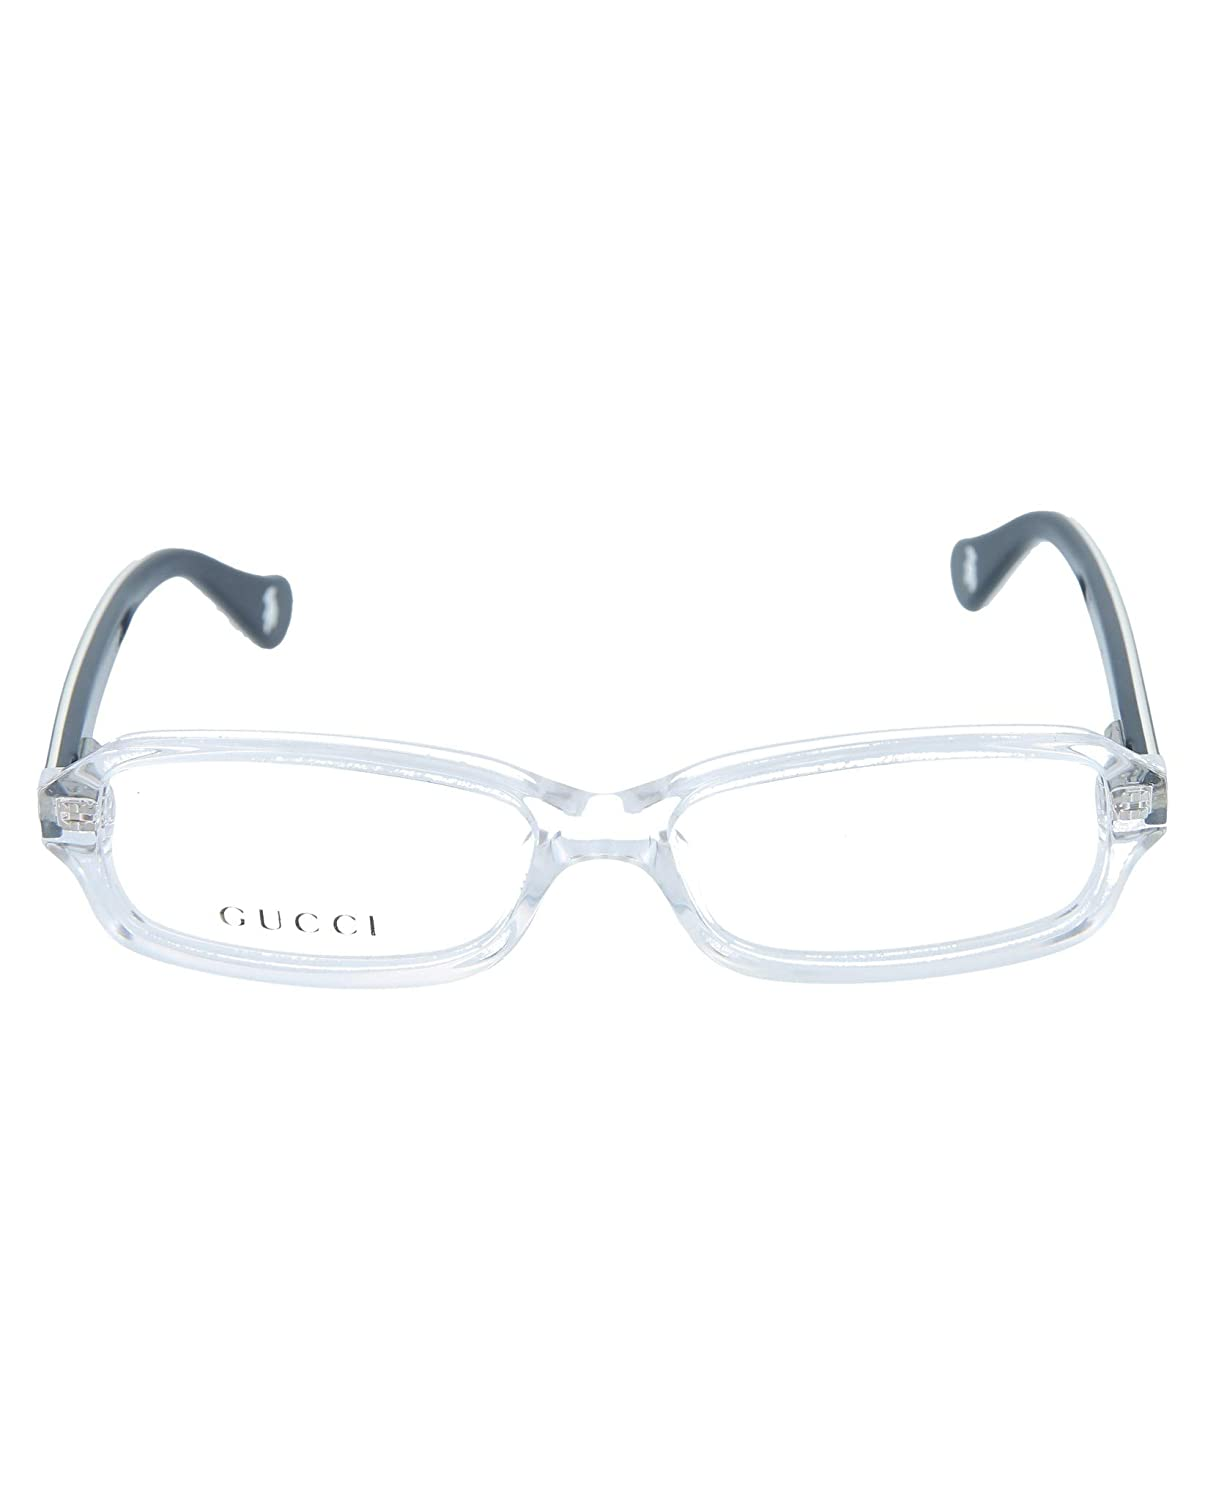 c5336bf2172 Amazon.com  Gucci Kids Round Oval Optical Frames GG5003C-113628HAW-4613   Clothing